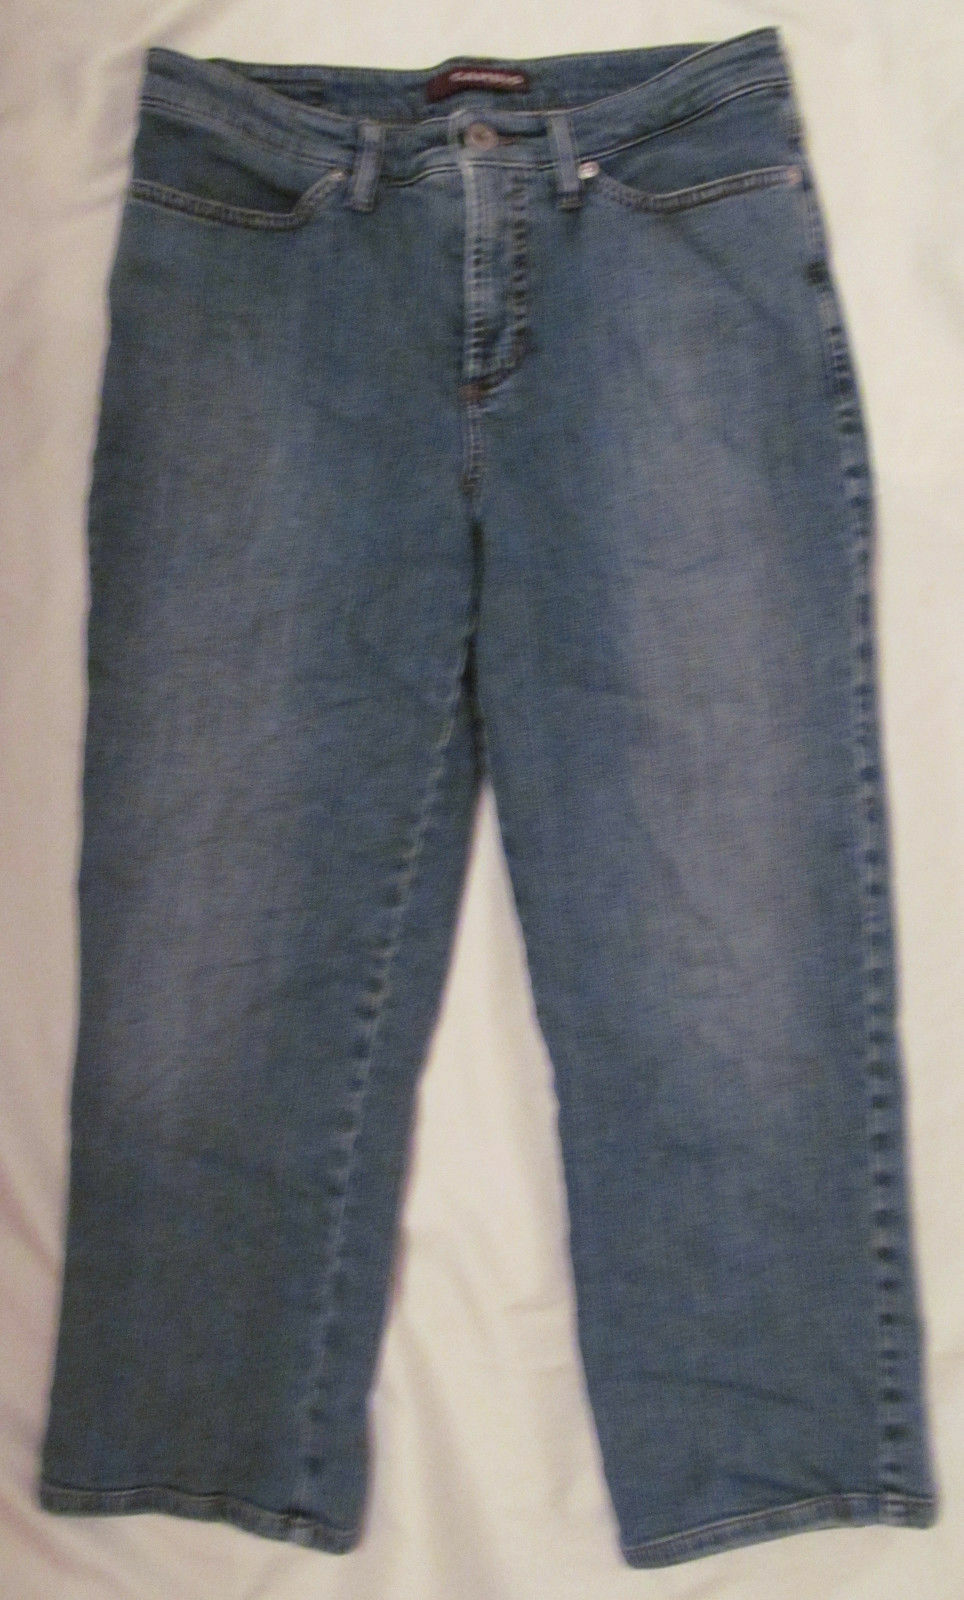 CAMBIO JESSICA stretchy high waisted slim capri crop aged look jeans US 8